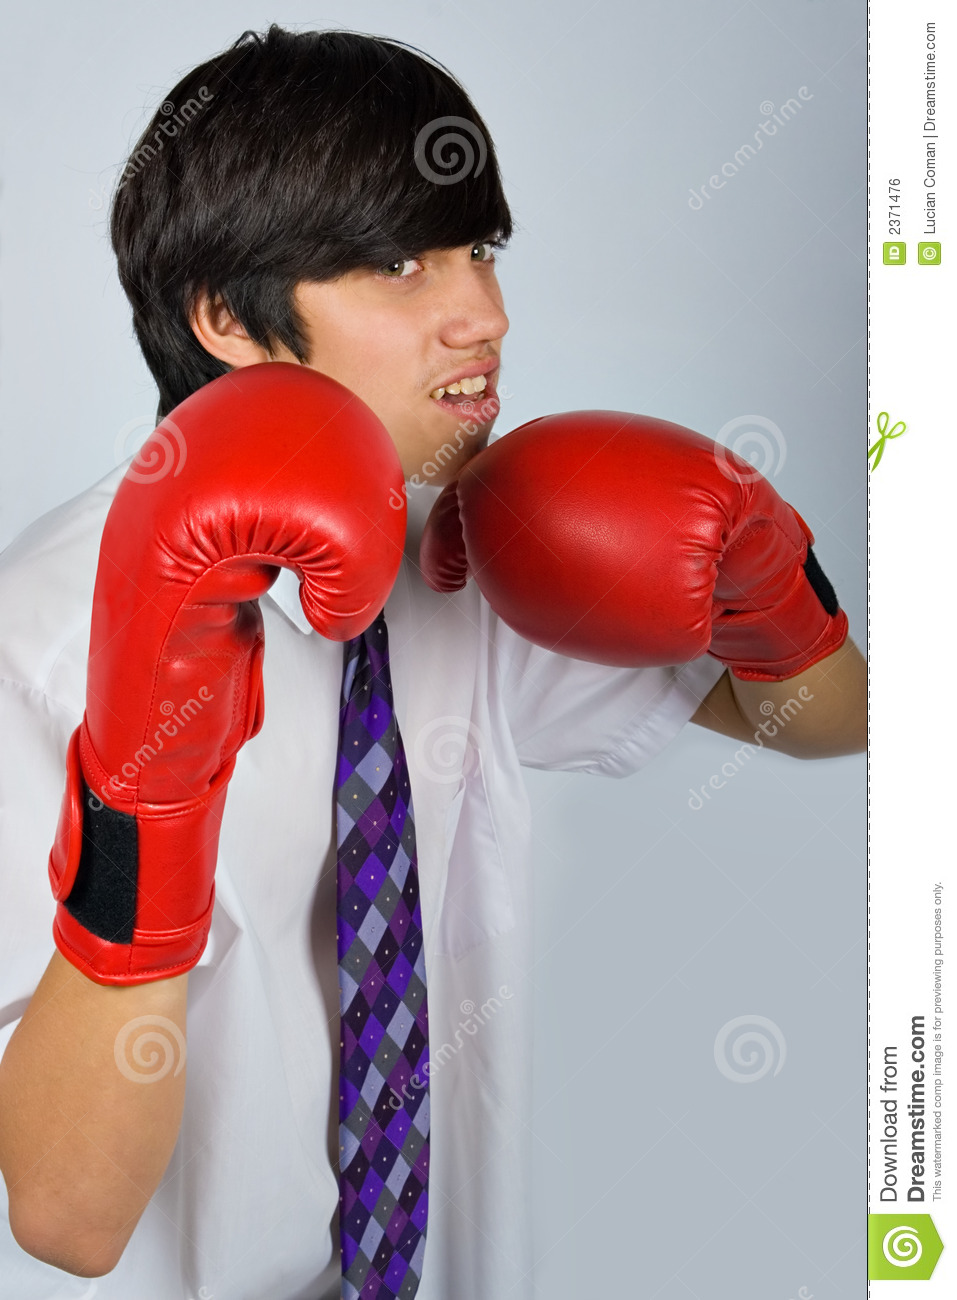 Shiv Naresh Teens Boxing Gloves 12oz: Teen In Boxing Gloves Royalty Free Stock Image